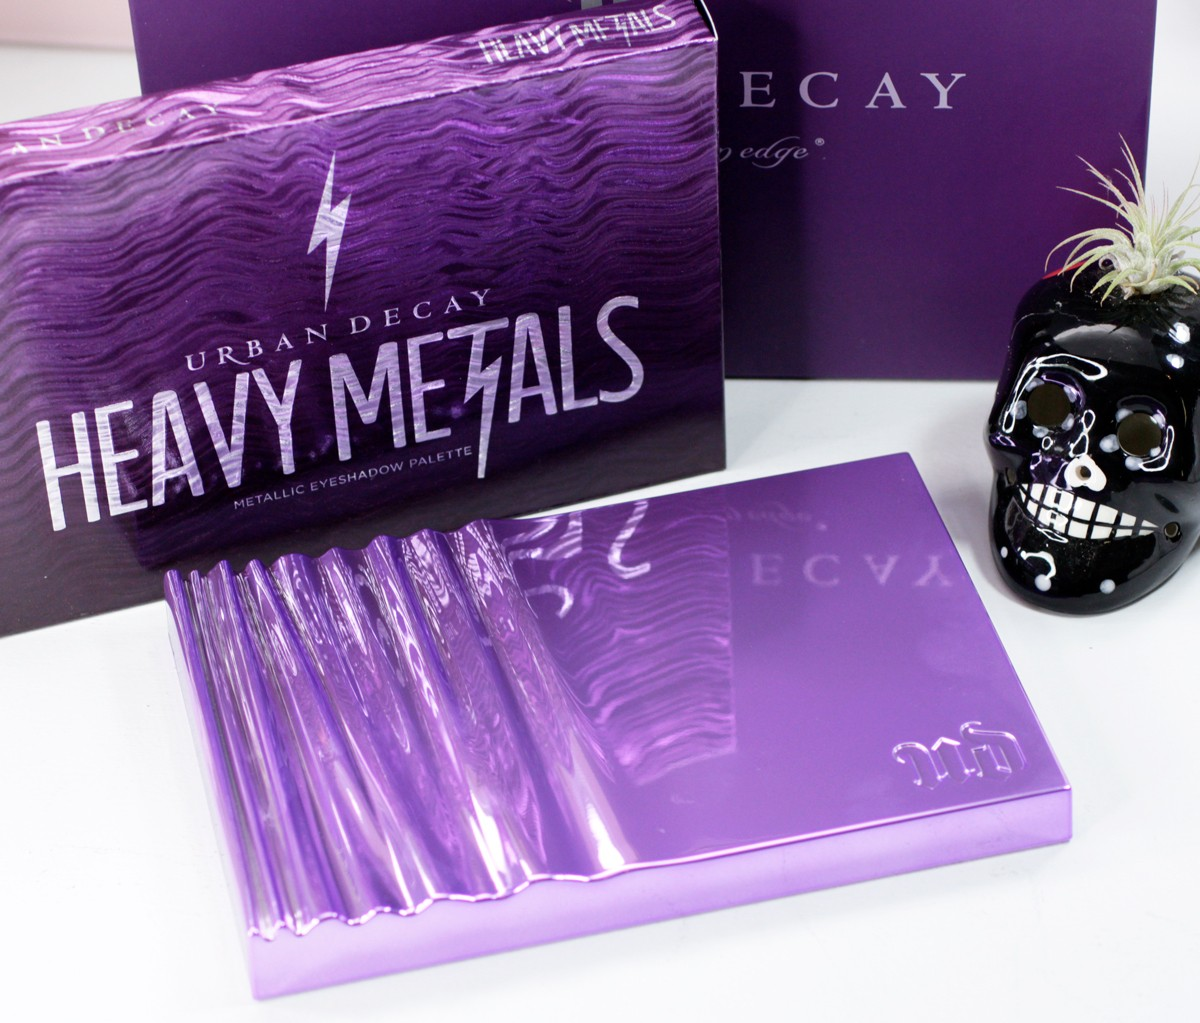 Urban Decay Heavy Metals Palette review by popular Los Angeles cruelty free beauty blogger My Beauty Bunny